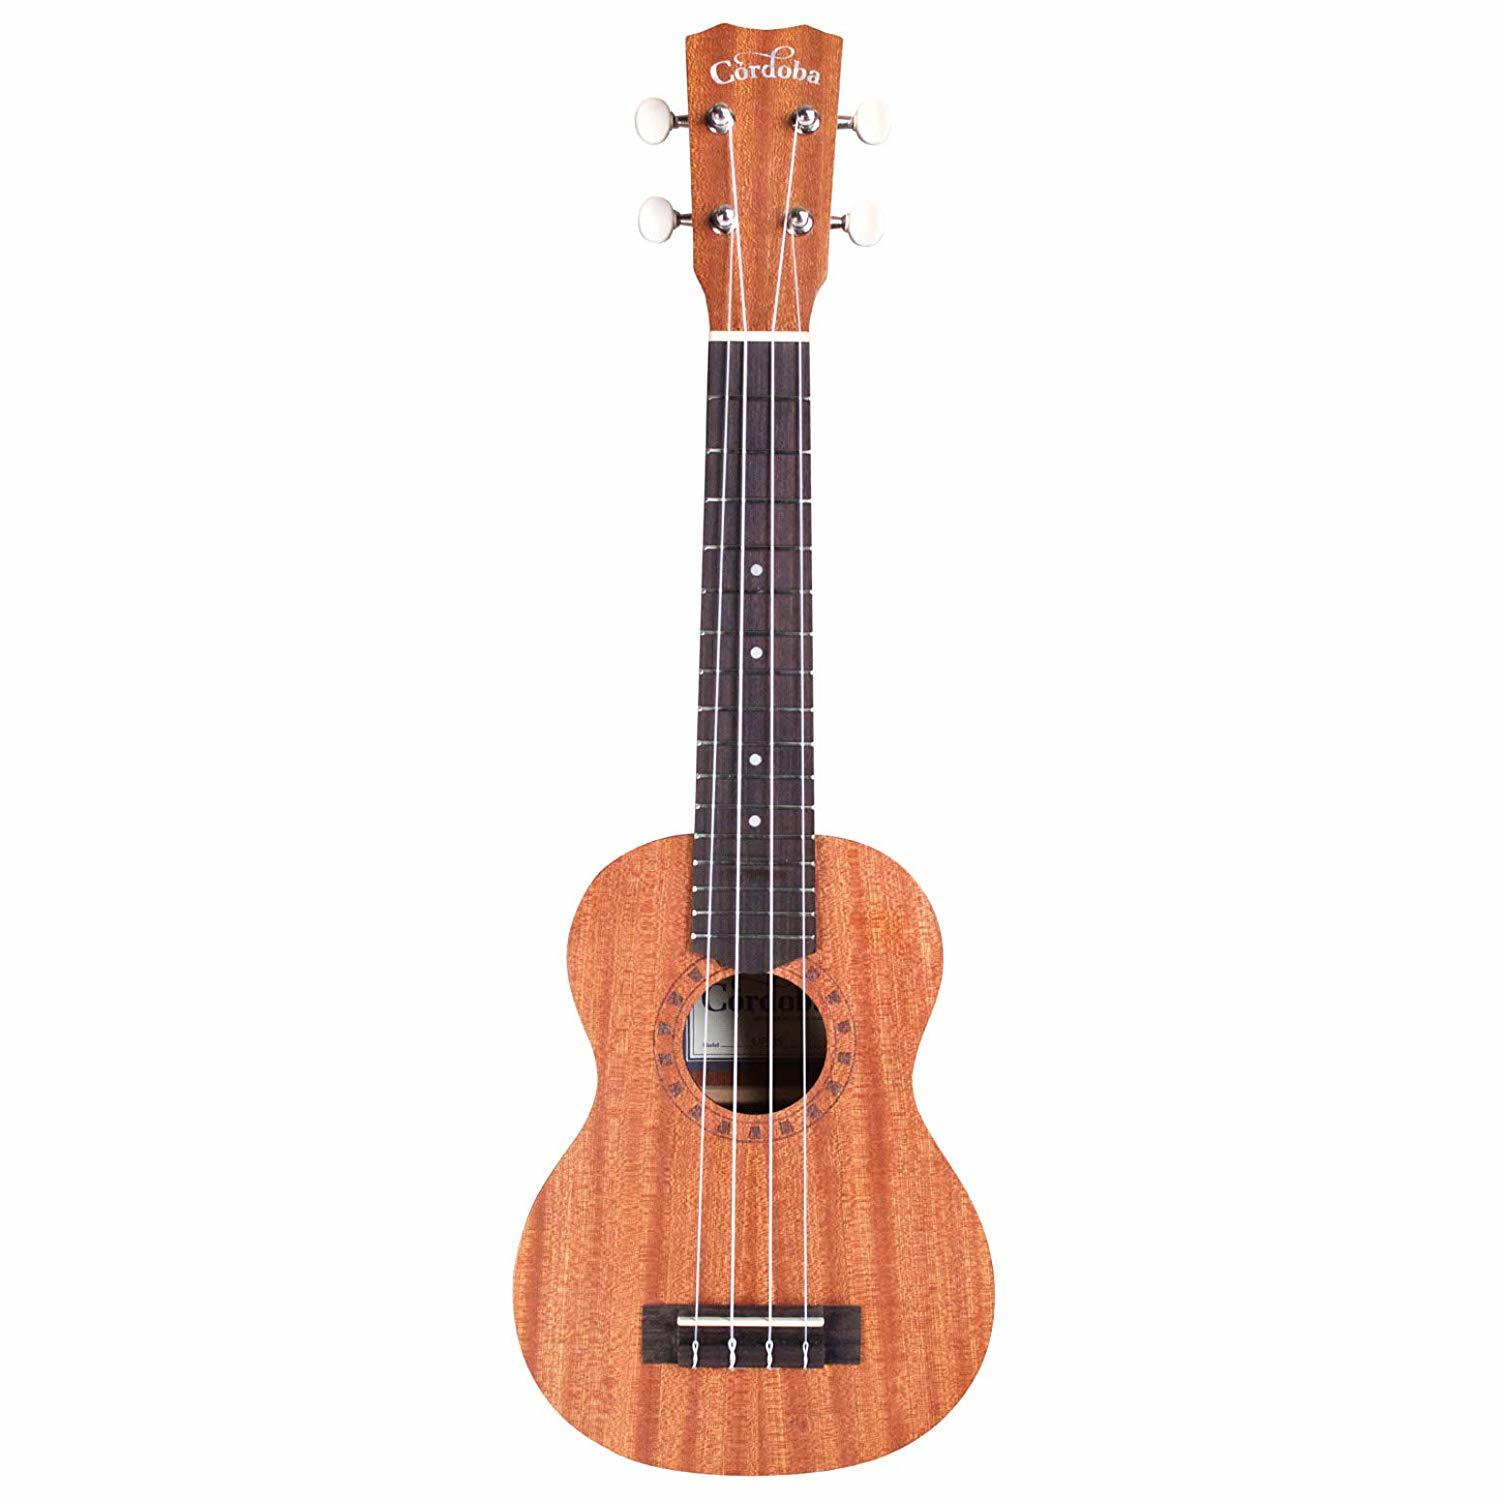 Cordoba Soprano Ukulele Player Pack- Includes Case and Accessories